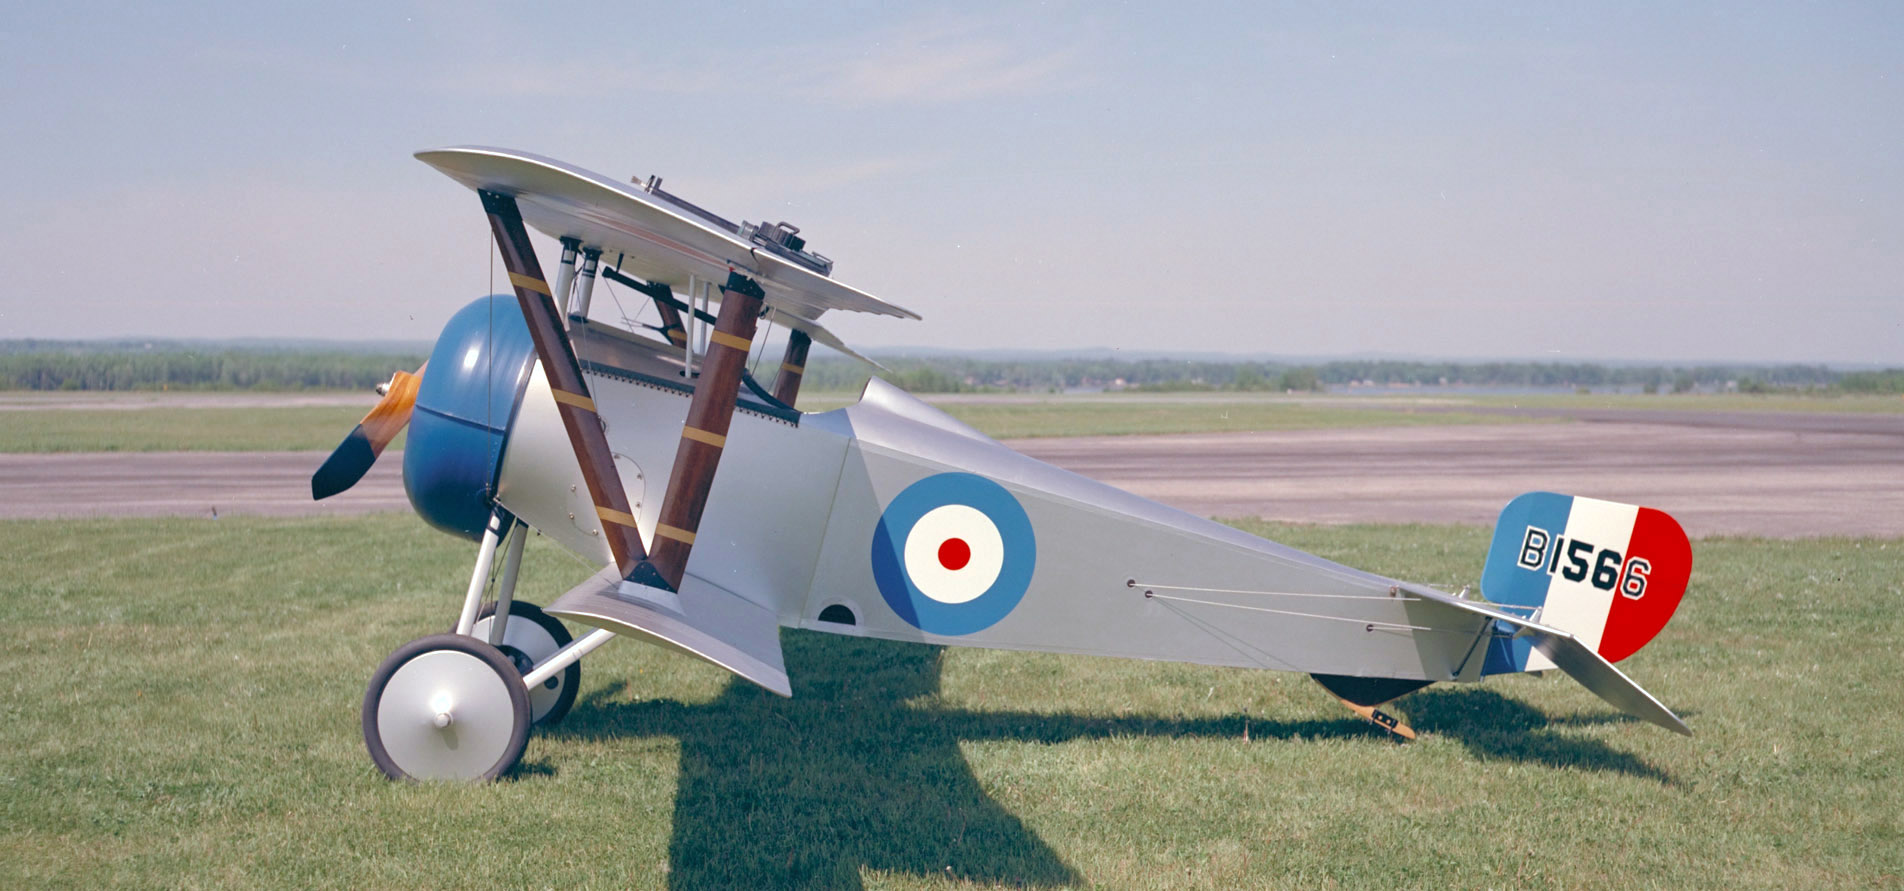 "B1566 is an airworthy replica of the Nieuport 17 Scout flown by Captain William ""Billy"" Bishop, VC during the First World War. It is maintained on display by the Canada Aviation and Space Museum in Ottawa. PHOTO: DND Archives, PCN-4603"